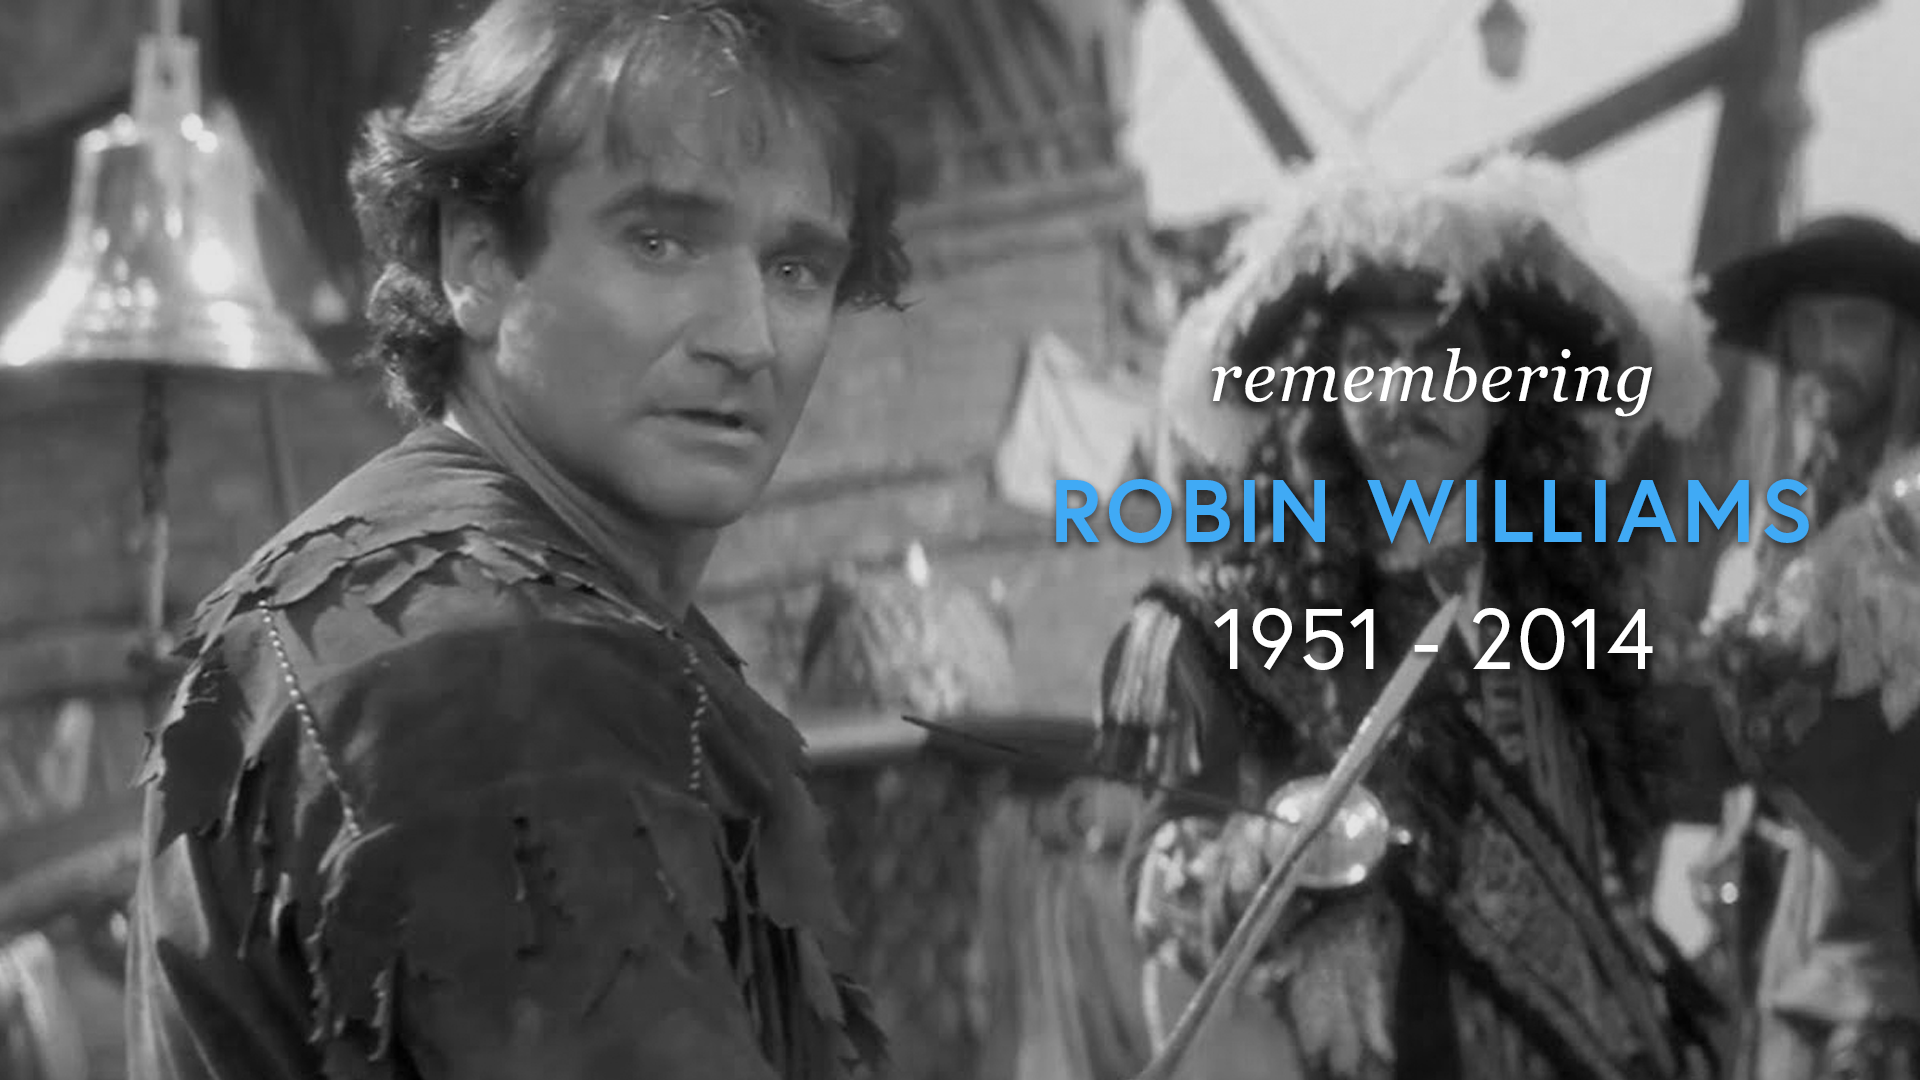 Remembering Robin Williams (1951 - 2014) screen capture